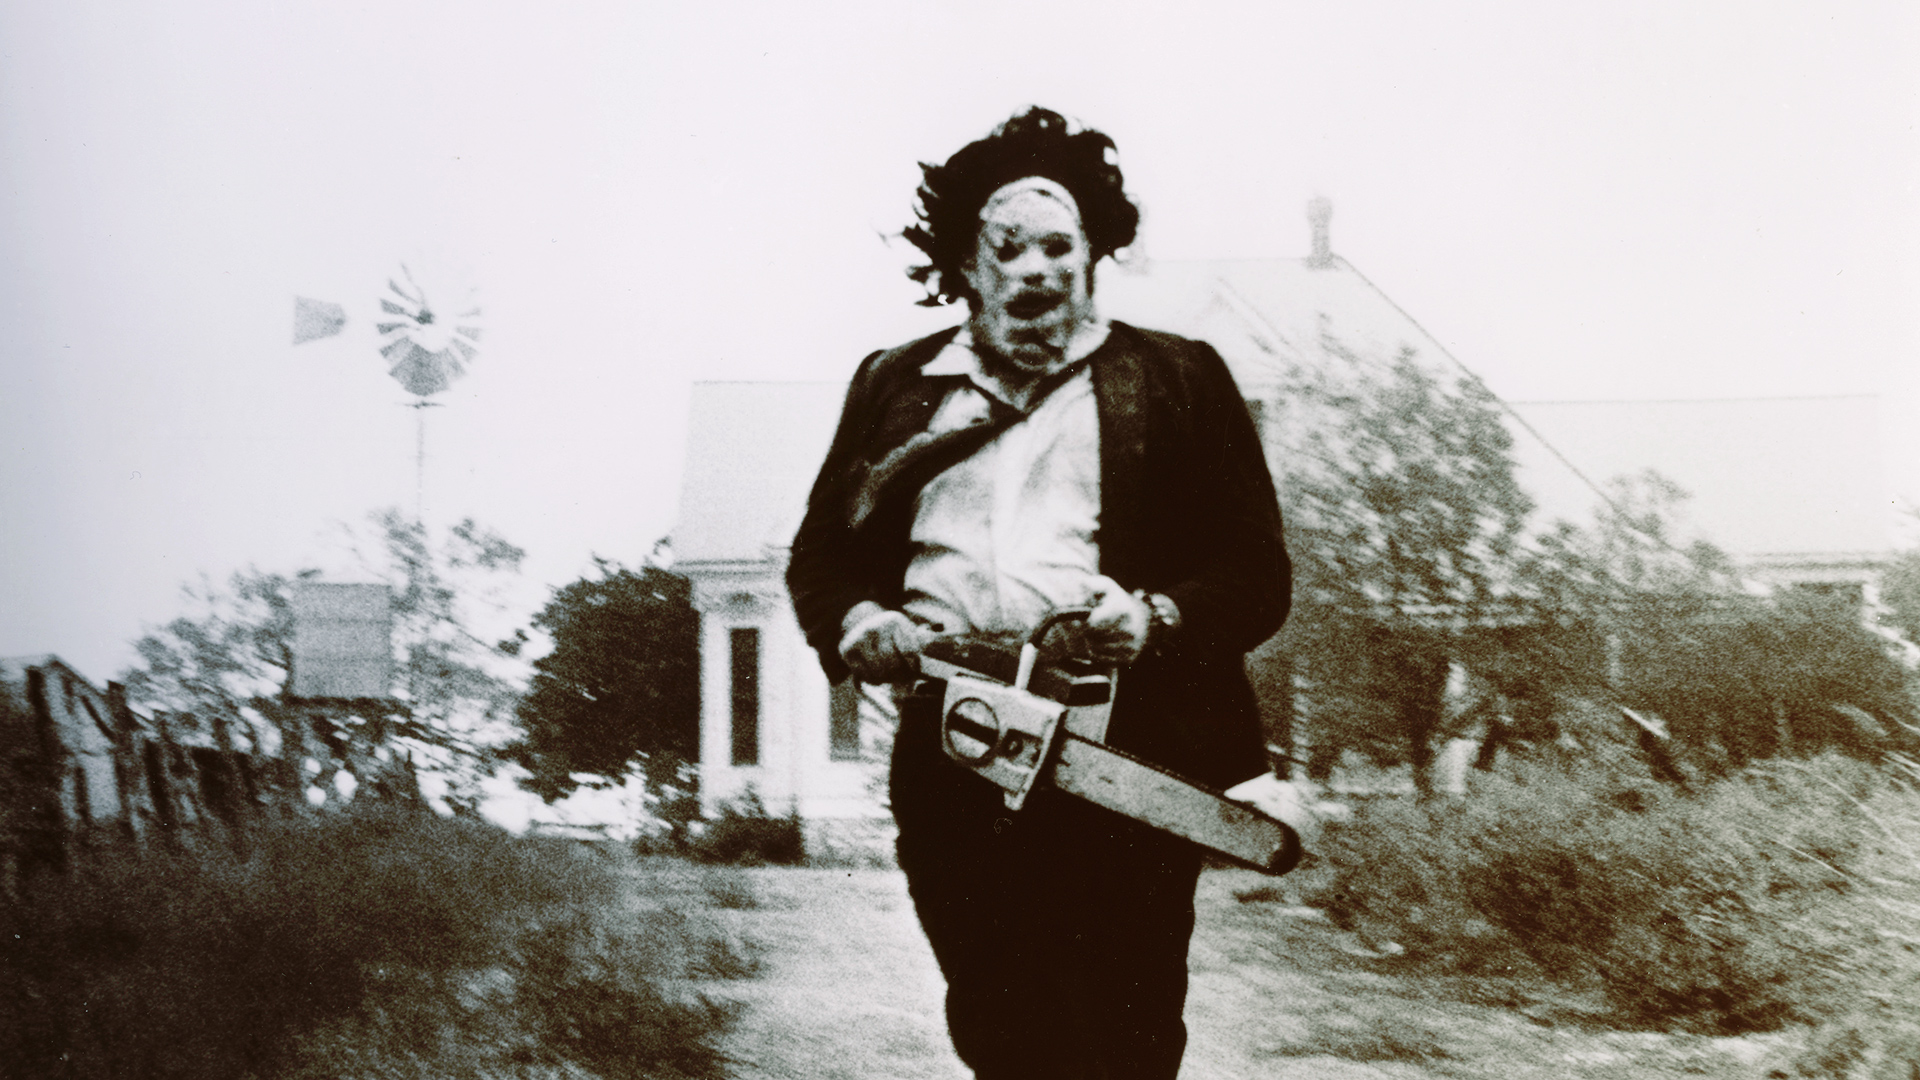 Leatherface from Texas Chainsaw massacre.